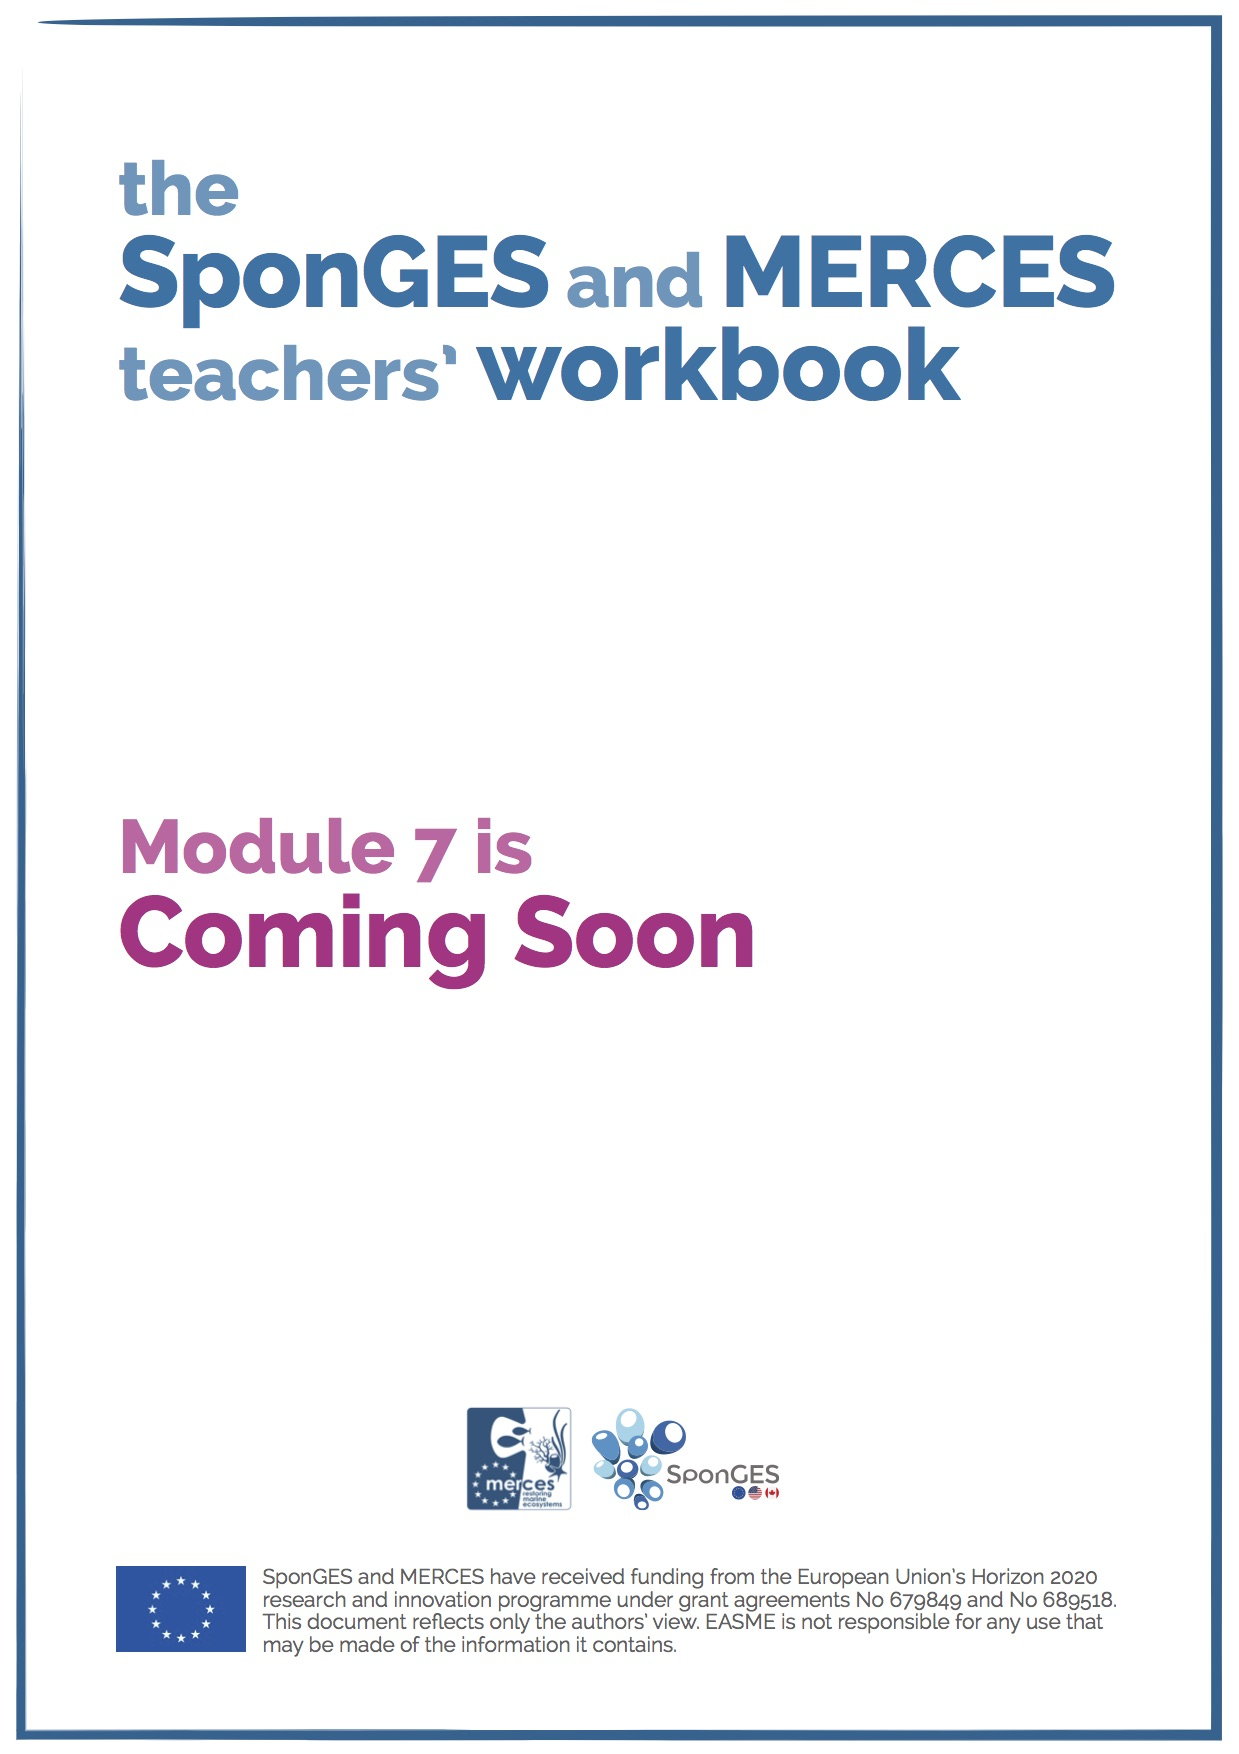 Module 7 of the SponGES and MERCES teachers' workbook